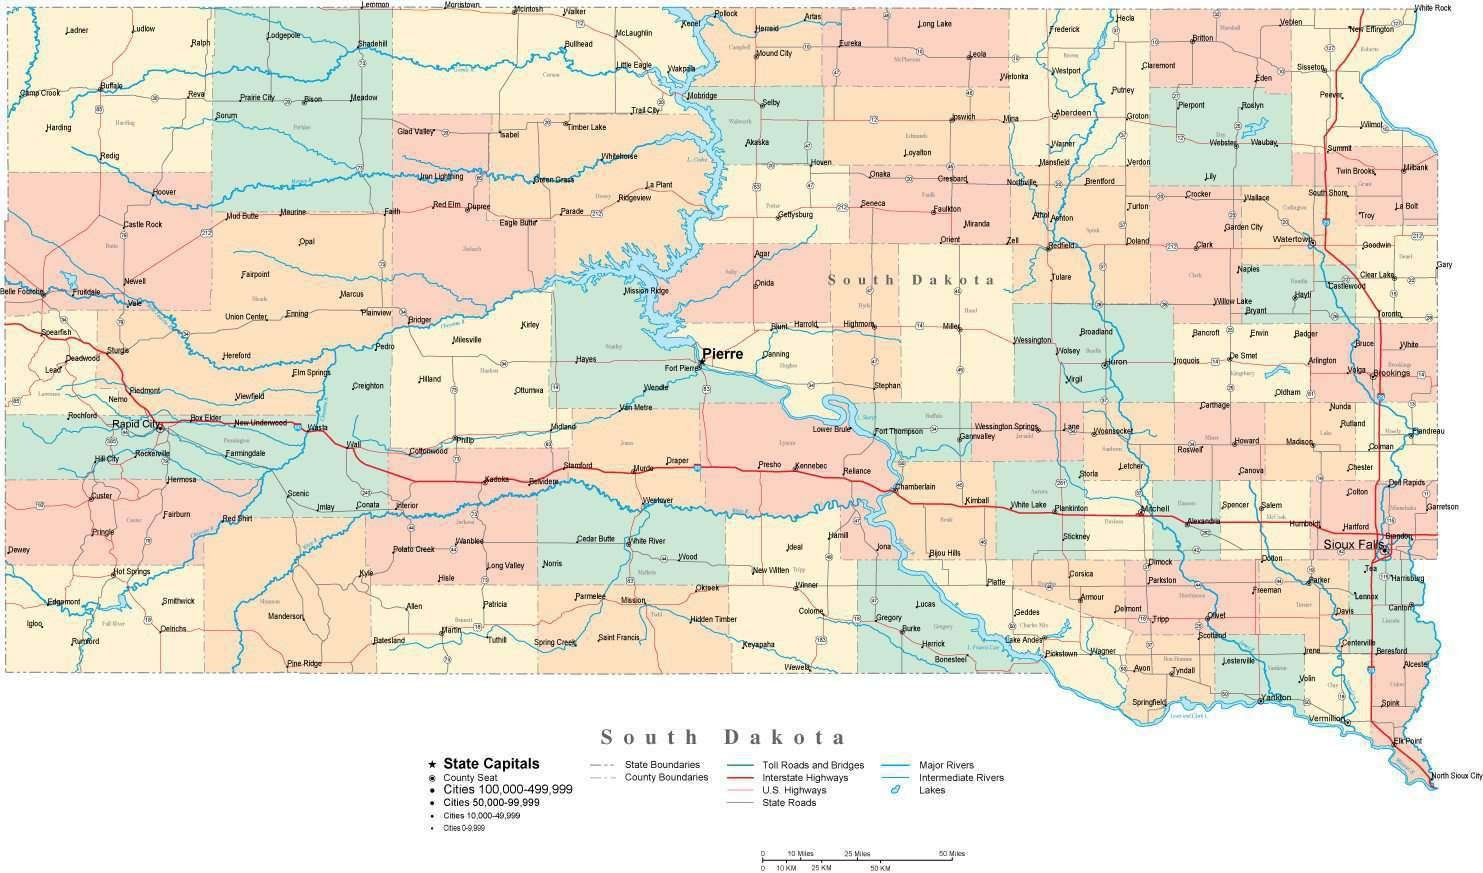 South Dakota Digital Vector Map With Counties Major Cities Roads